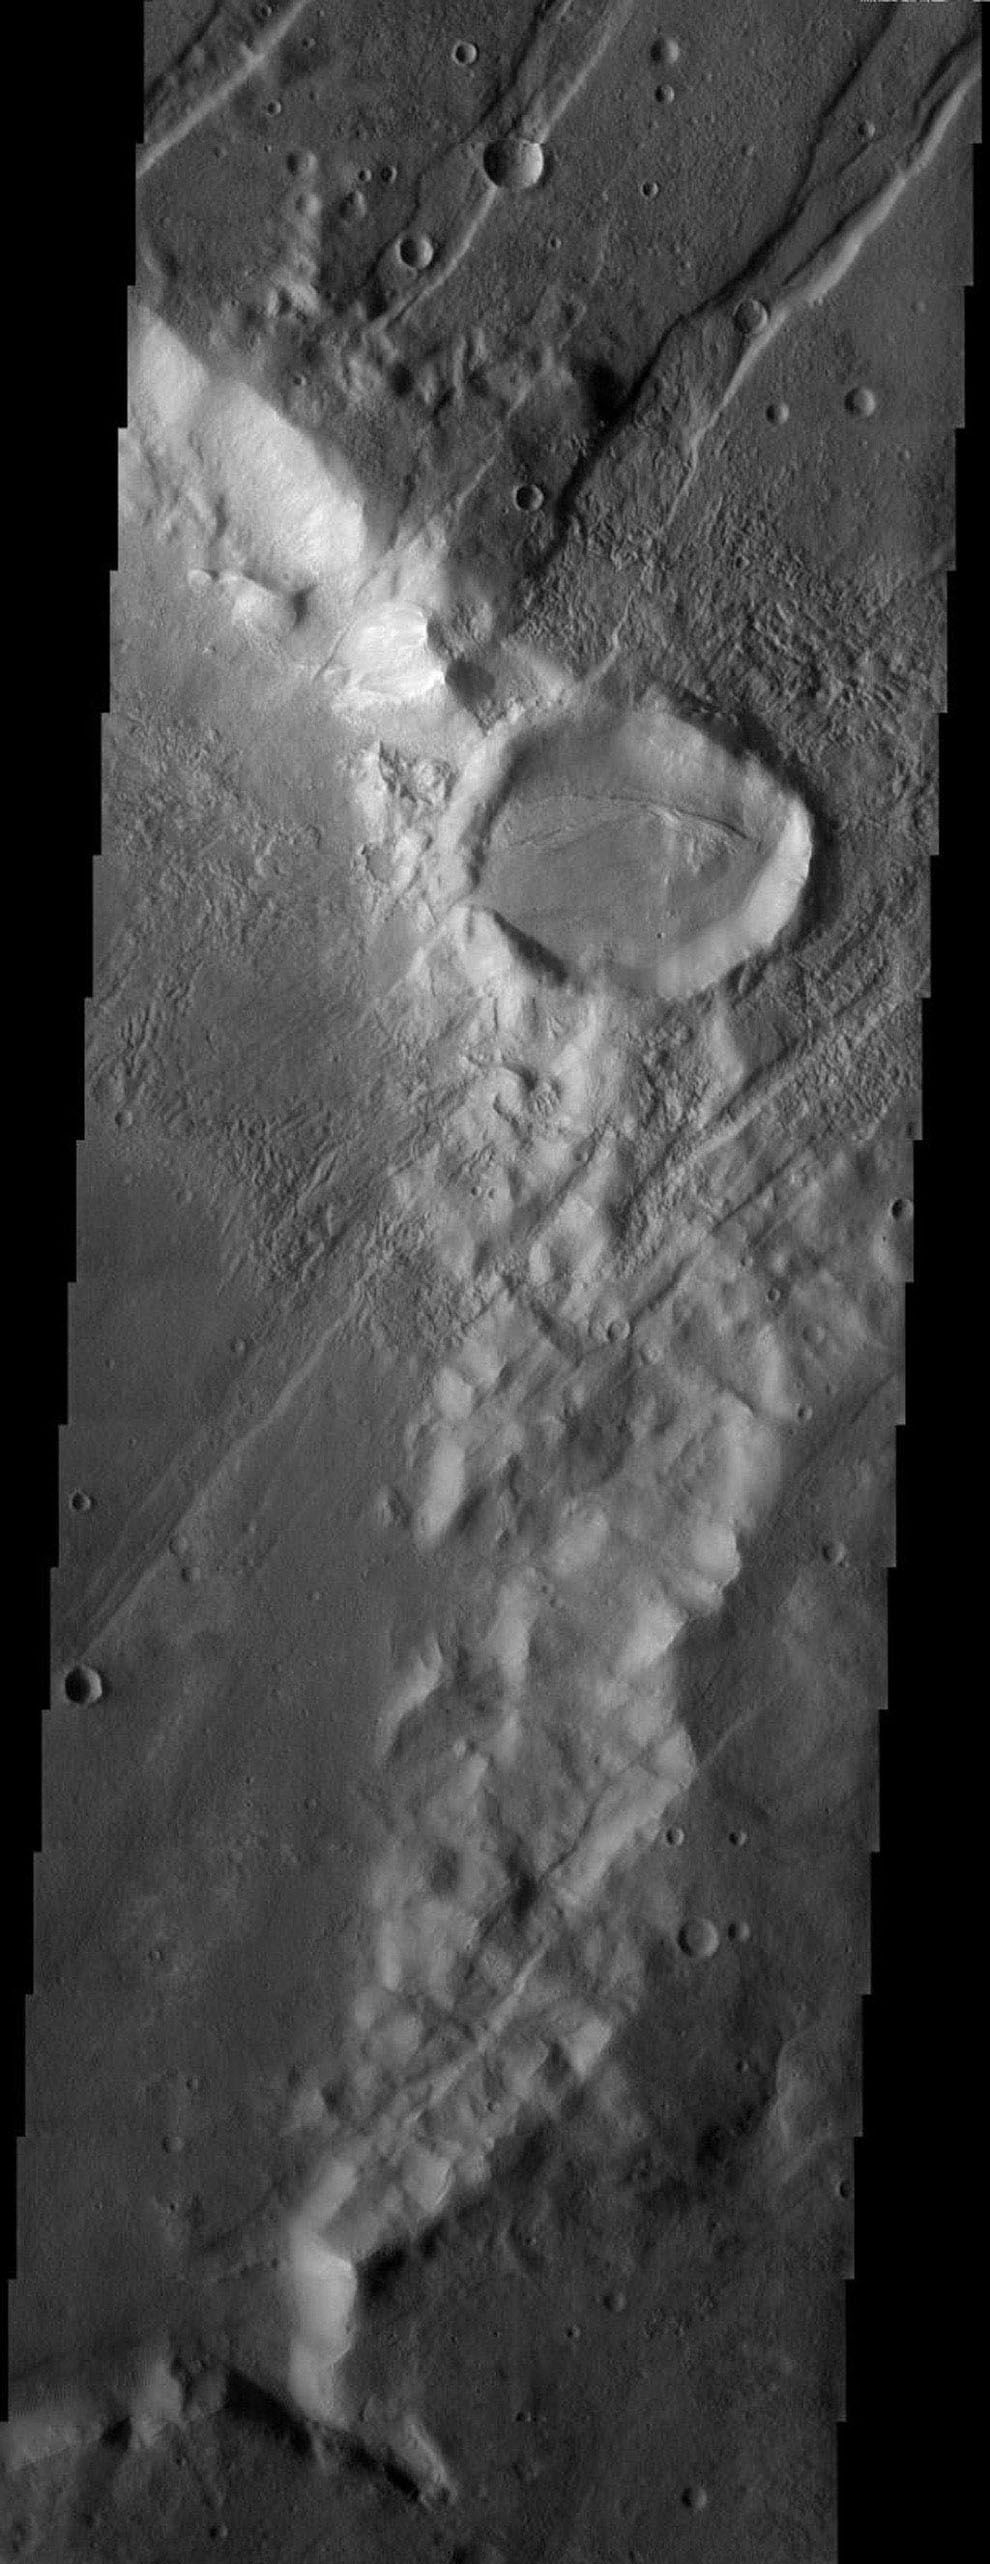 NASA's Mars Odyssey spacecraft captured this image in August 2003, showing large grooves indicating tectonic faulting cross just south of the Tharsis Monteson Mars.